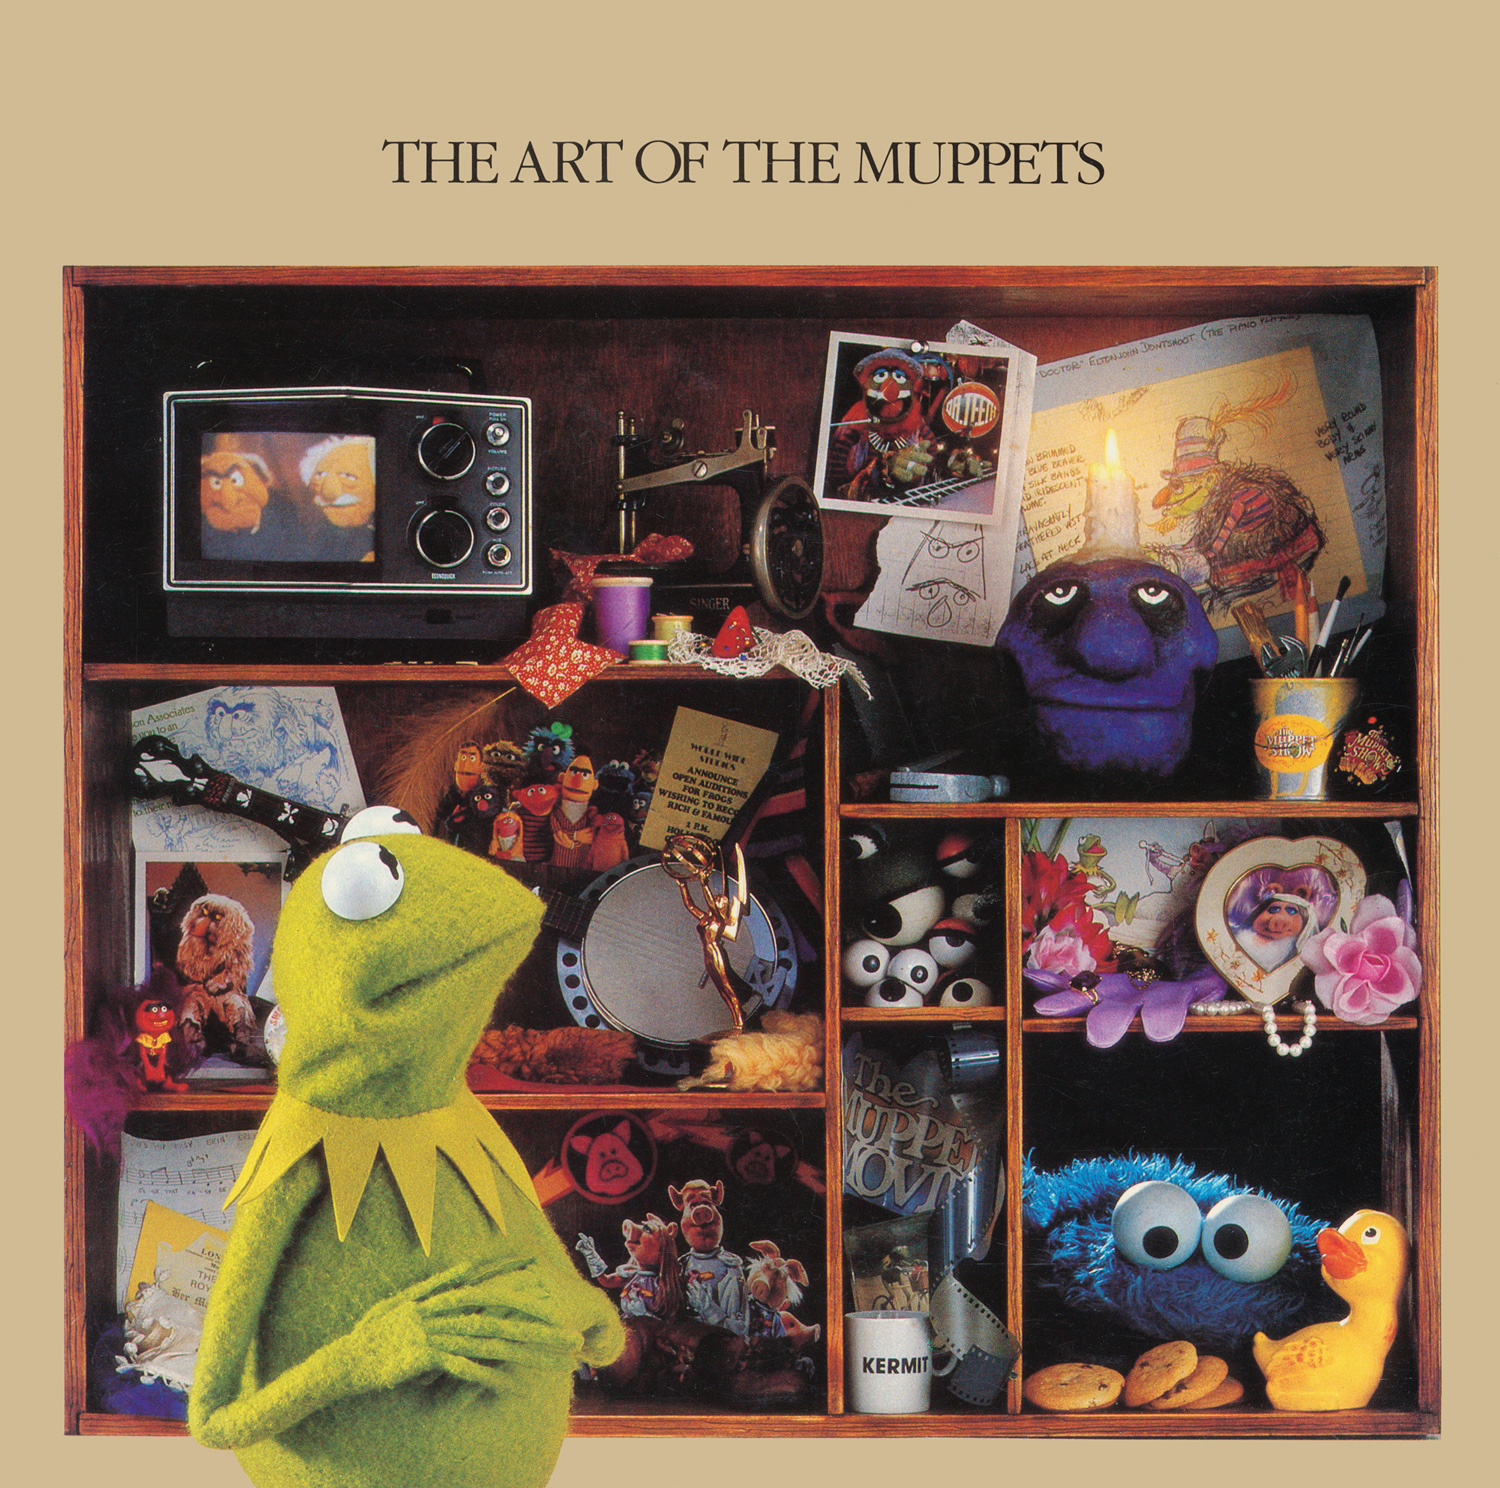 The Art of the Muppets (book)